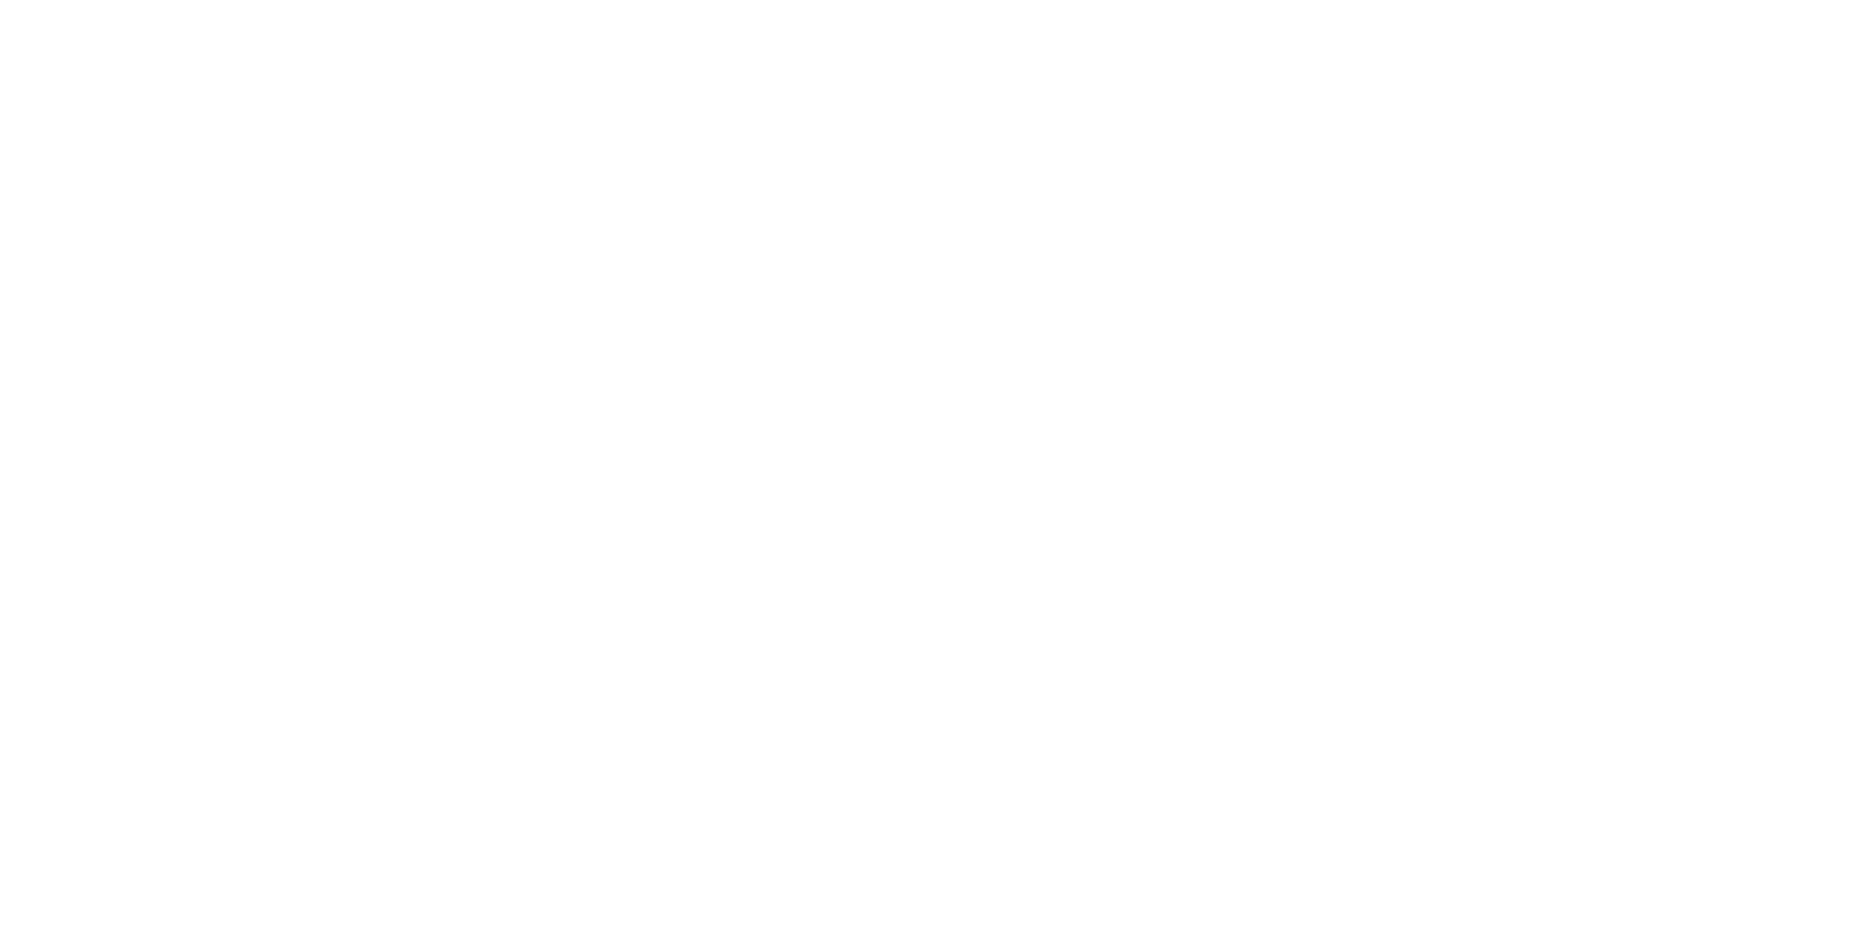 EarthBiogenomeProject.png